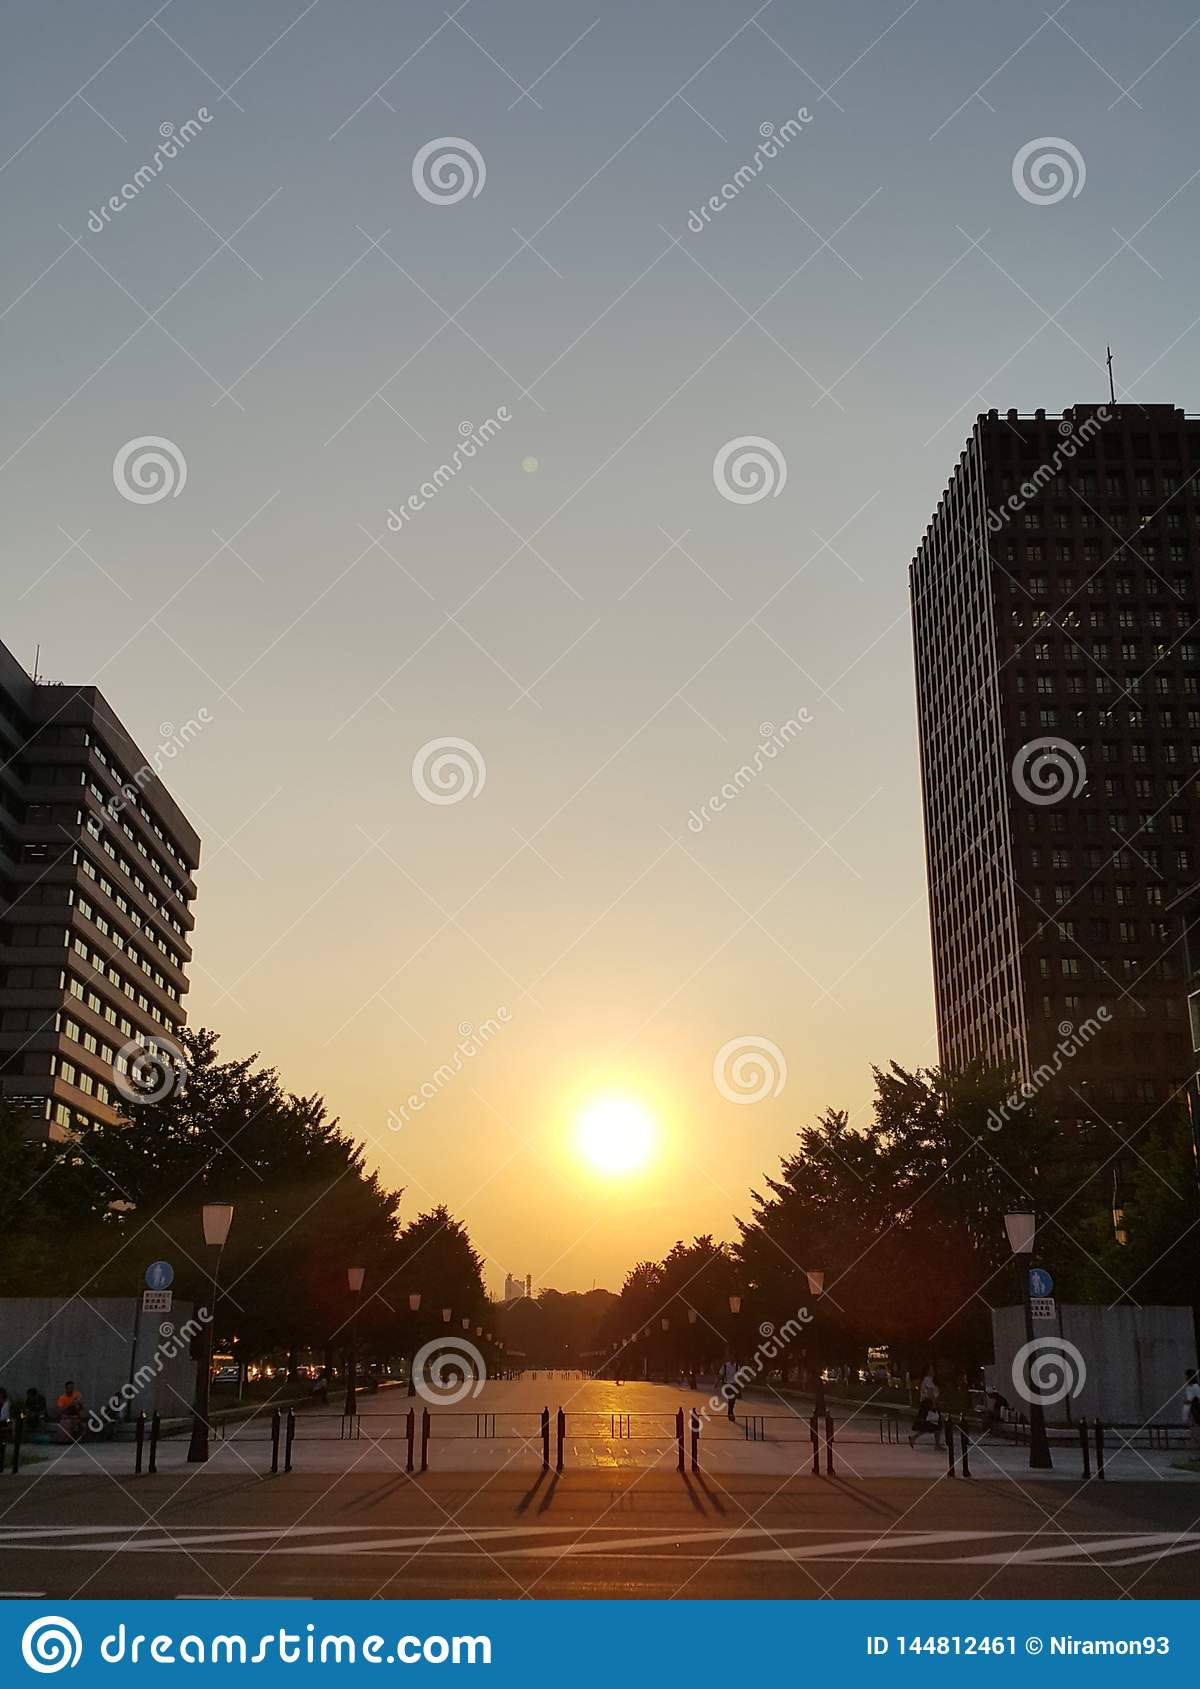 Sunset at the Tokyo station